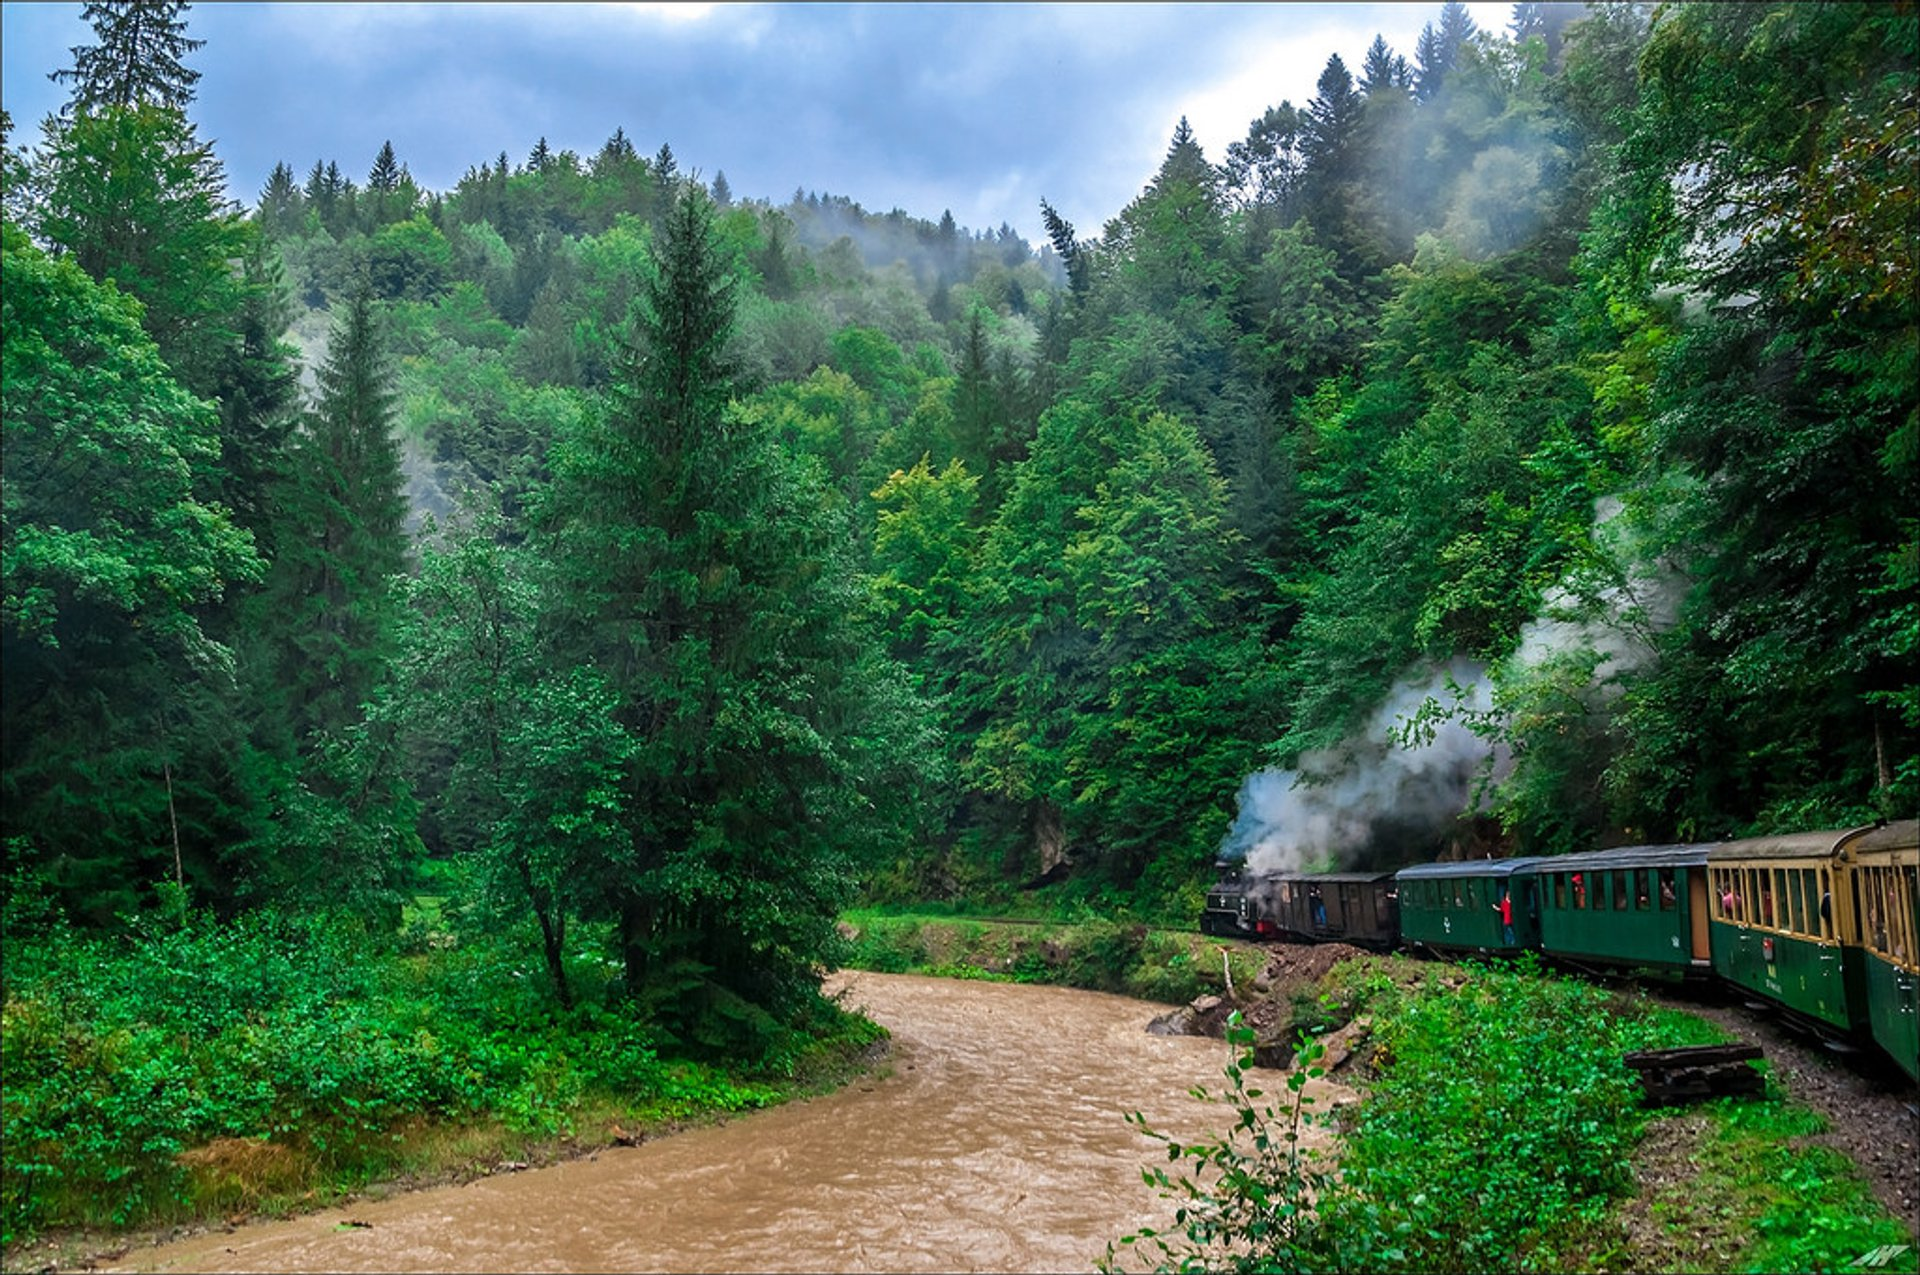 Steaming through the Vaser Valley 2020